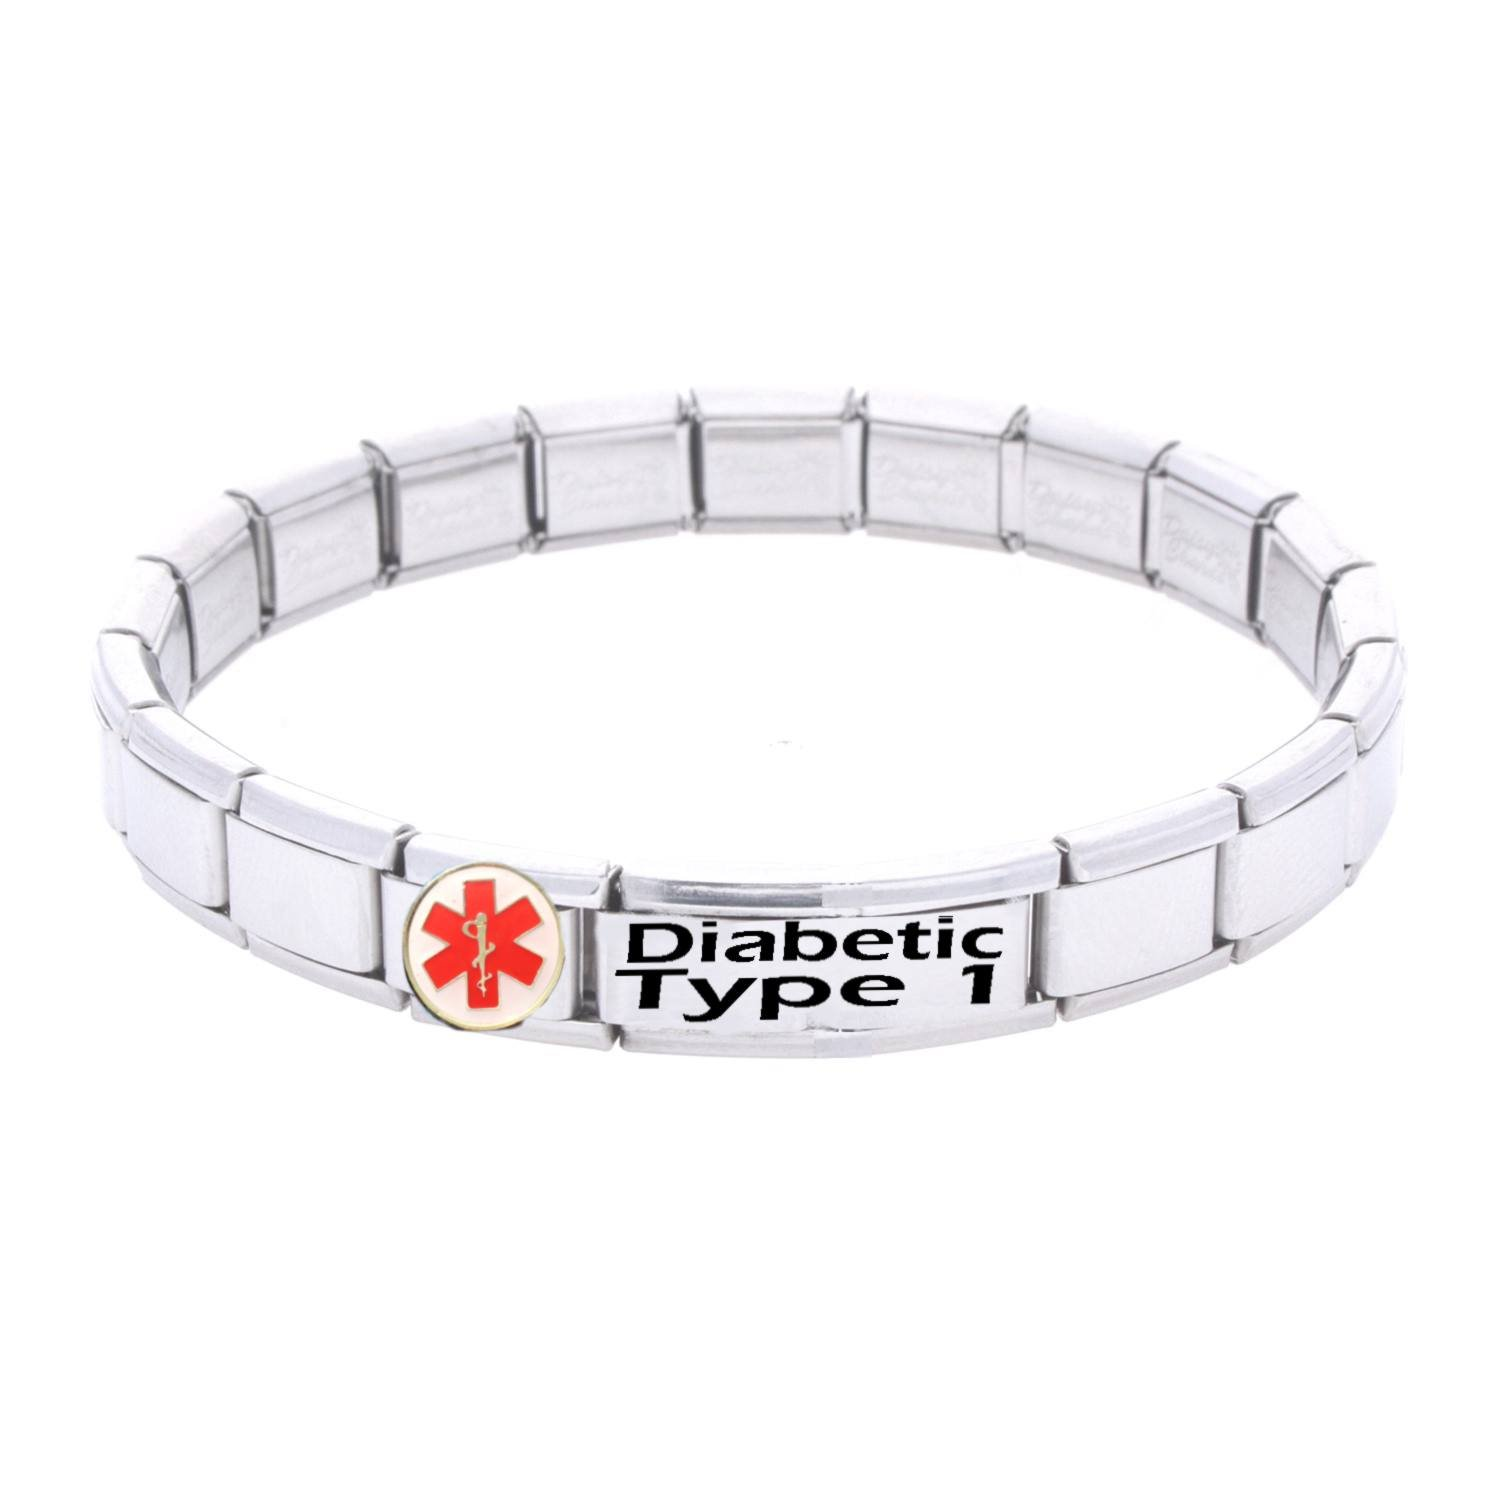 wristband diabetic bracelet medical in alert diabetes hologram nurse lukeni dependent armband silicone bangles insulin bracelets from type item